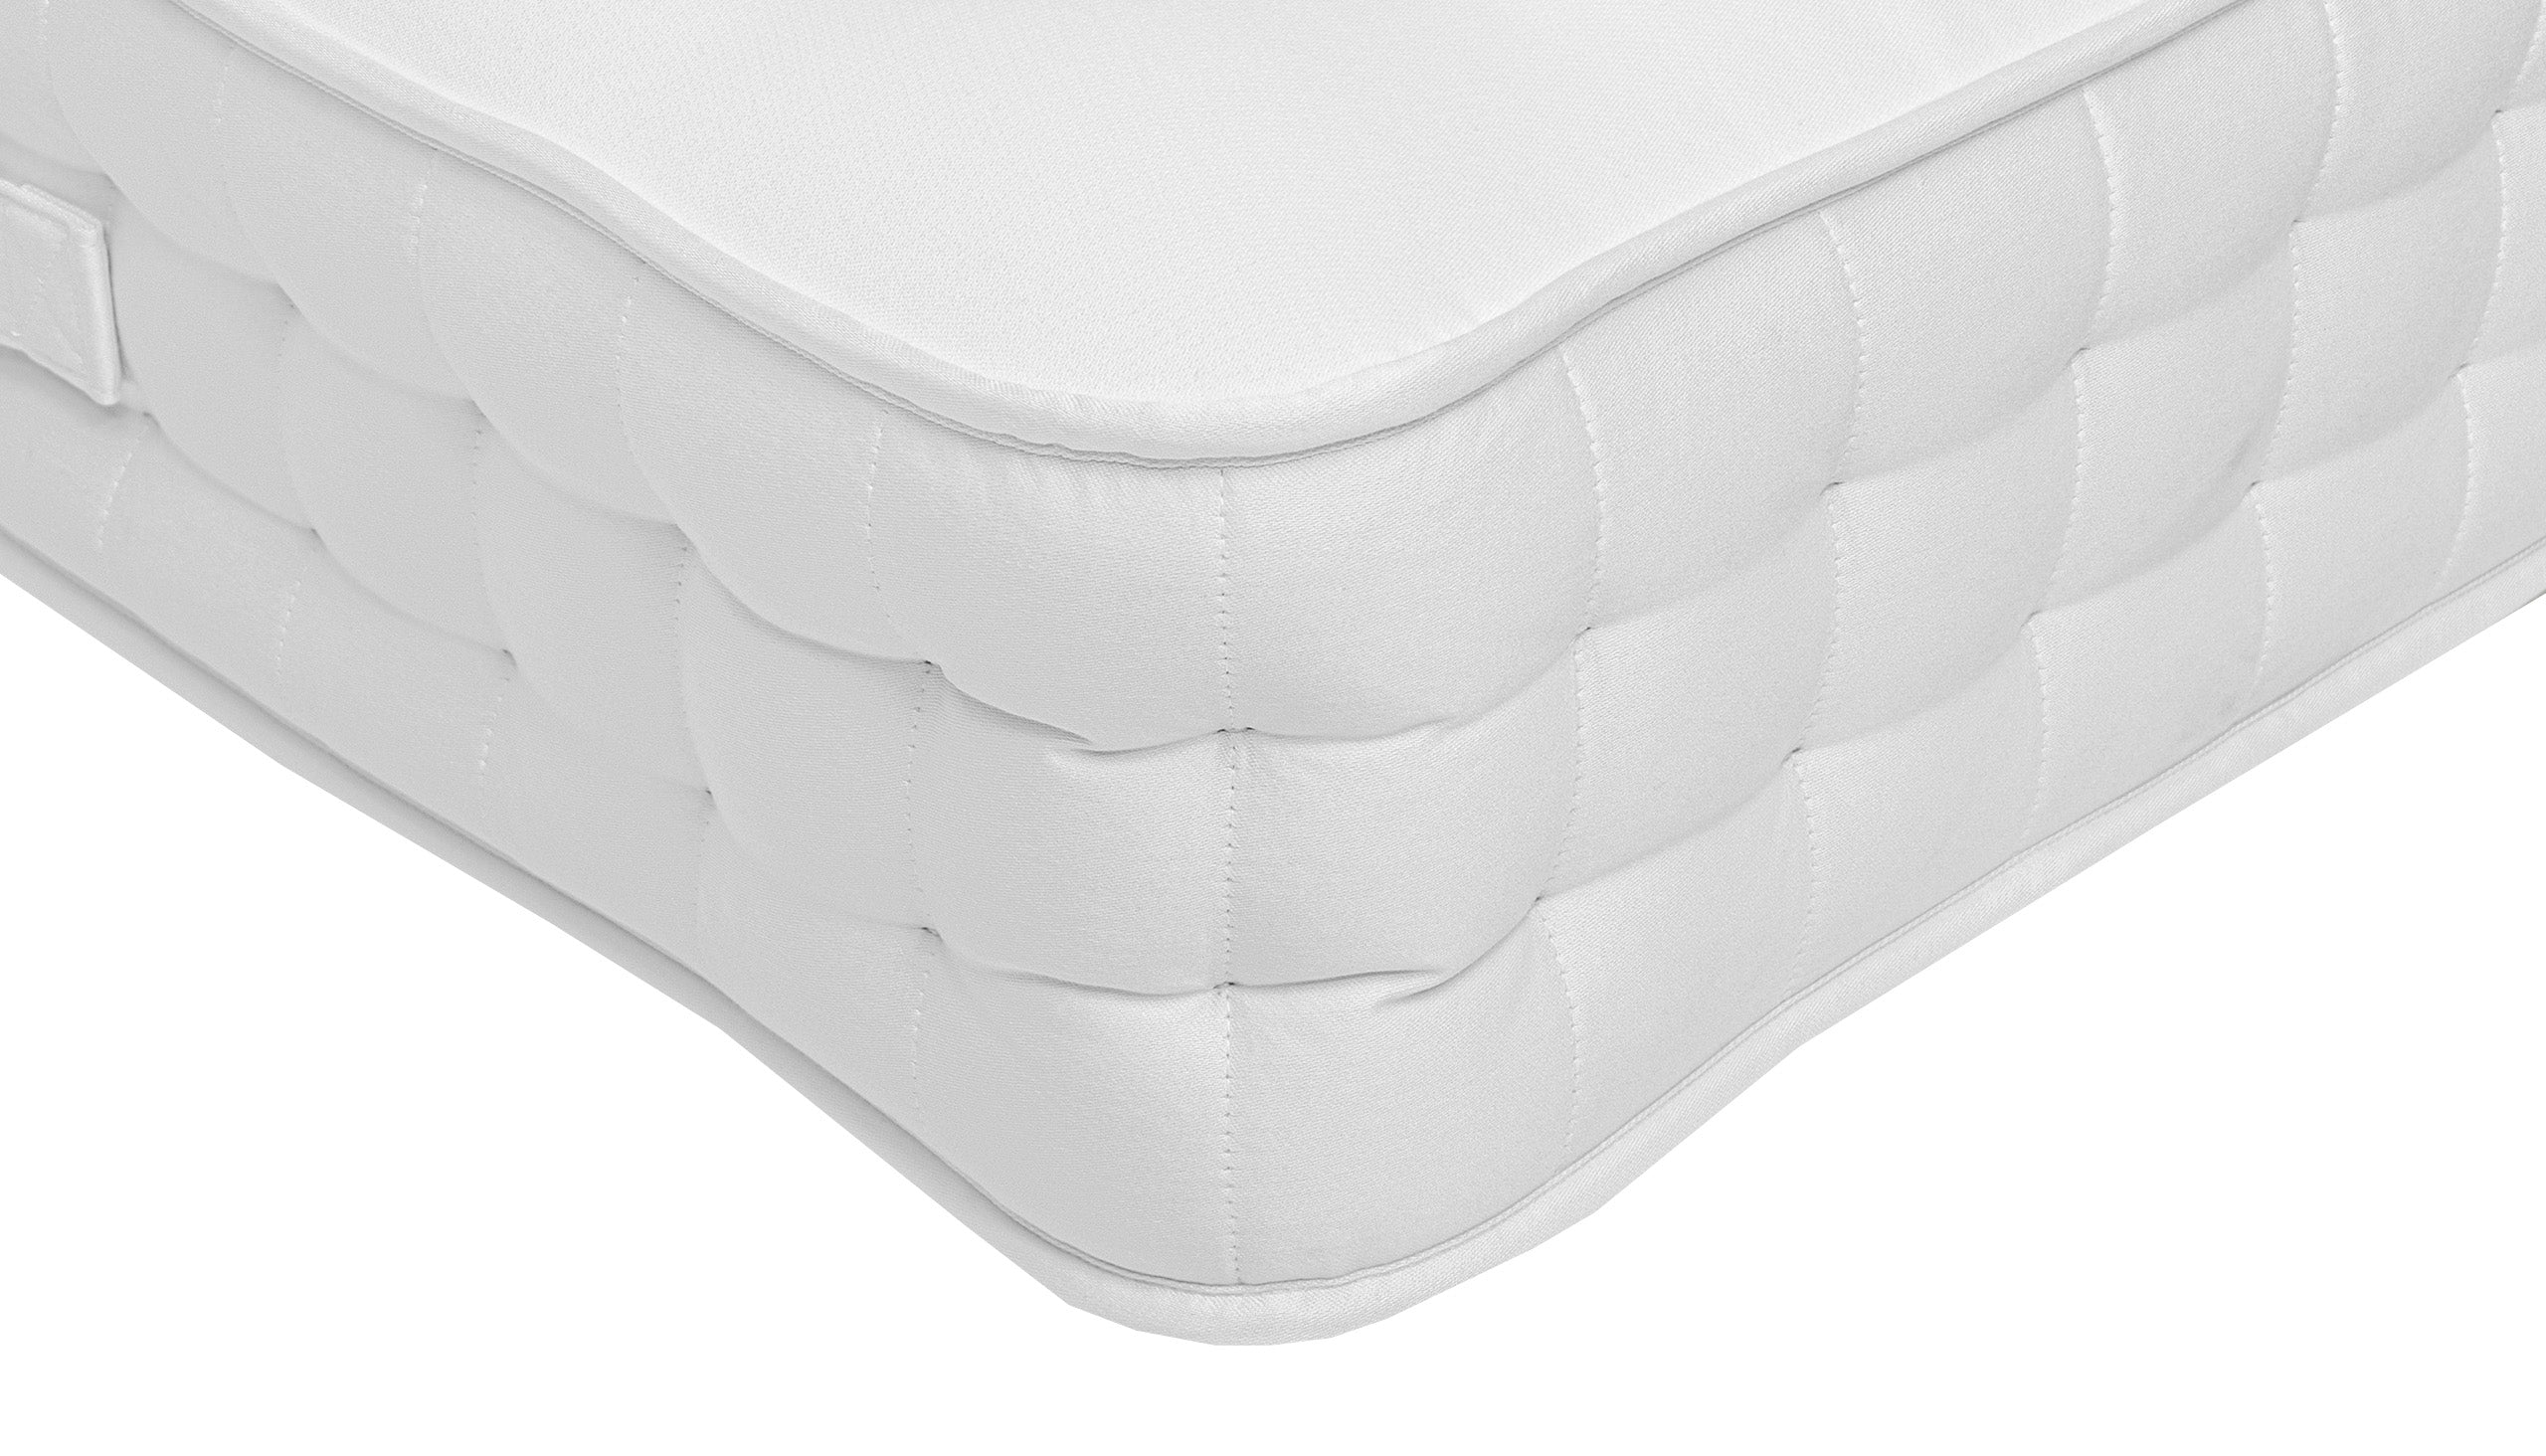 Harrow Pocket 2000 Medium Mattress